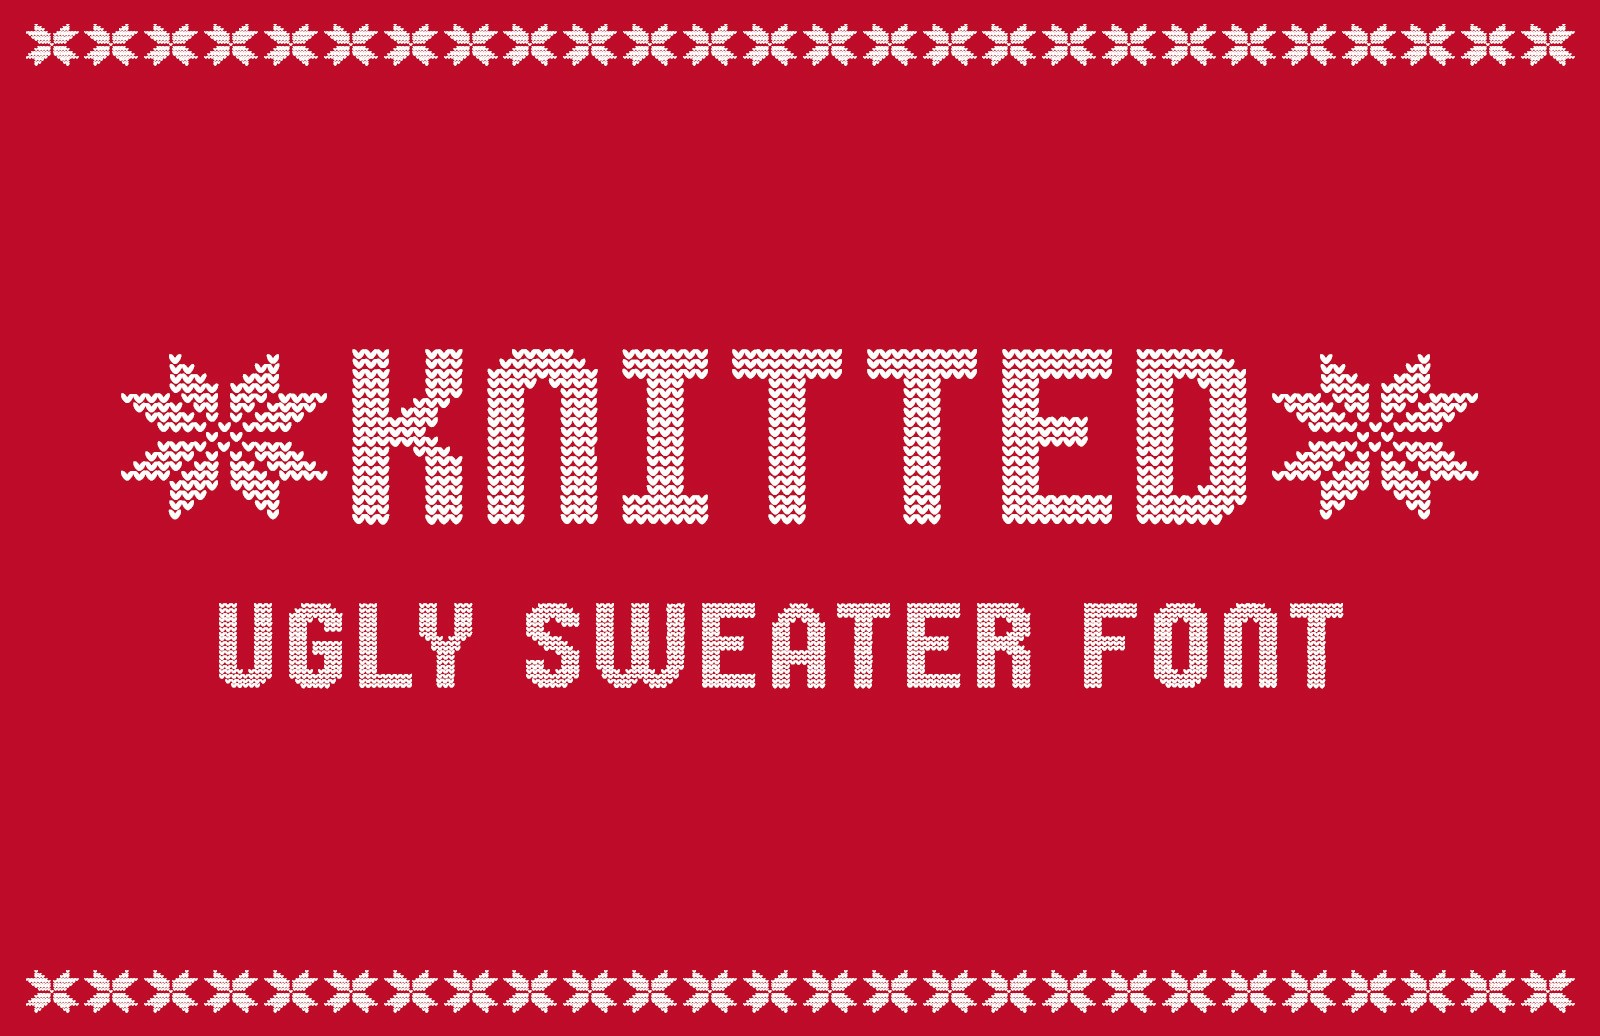 Knitted - Ugly Sweater Font